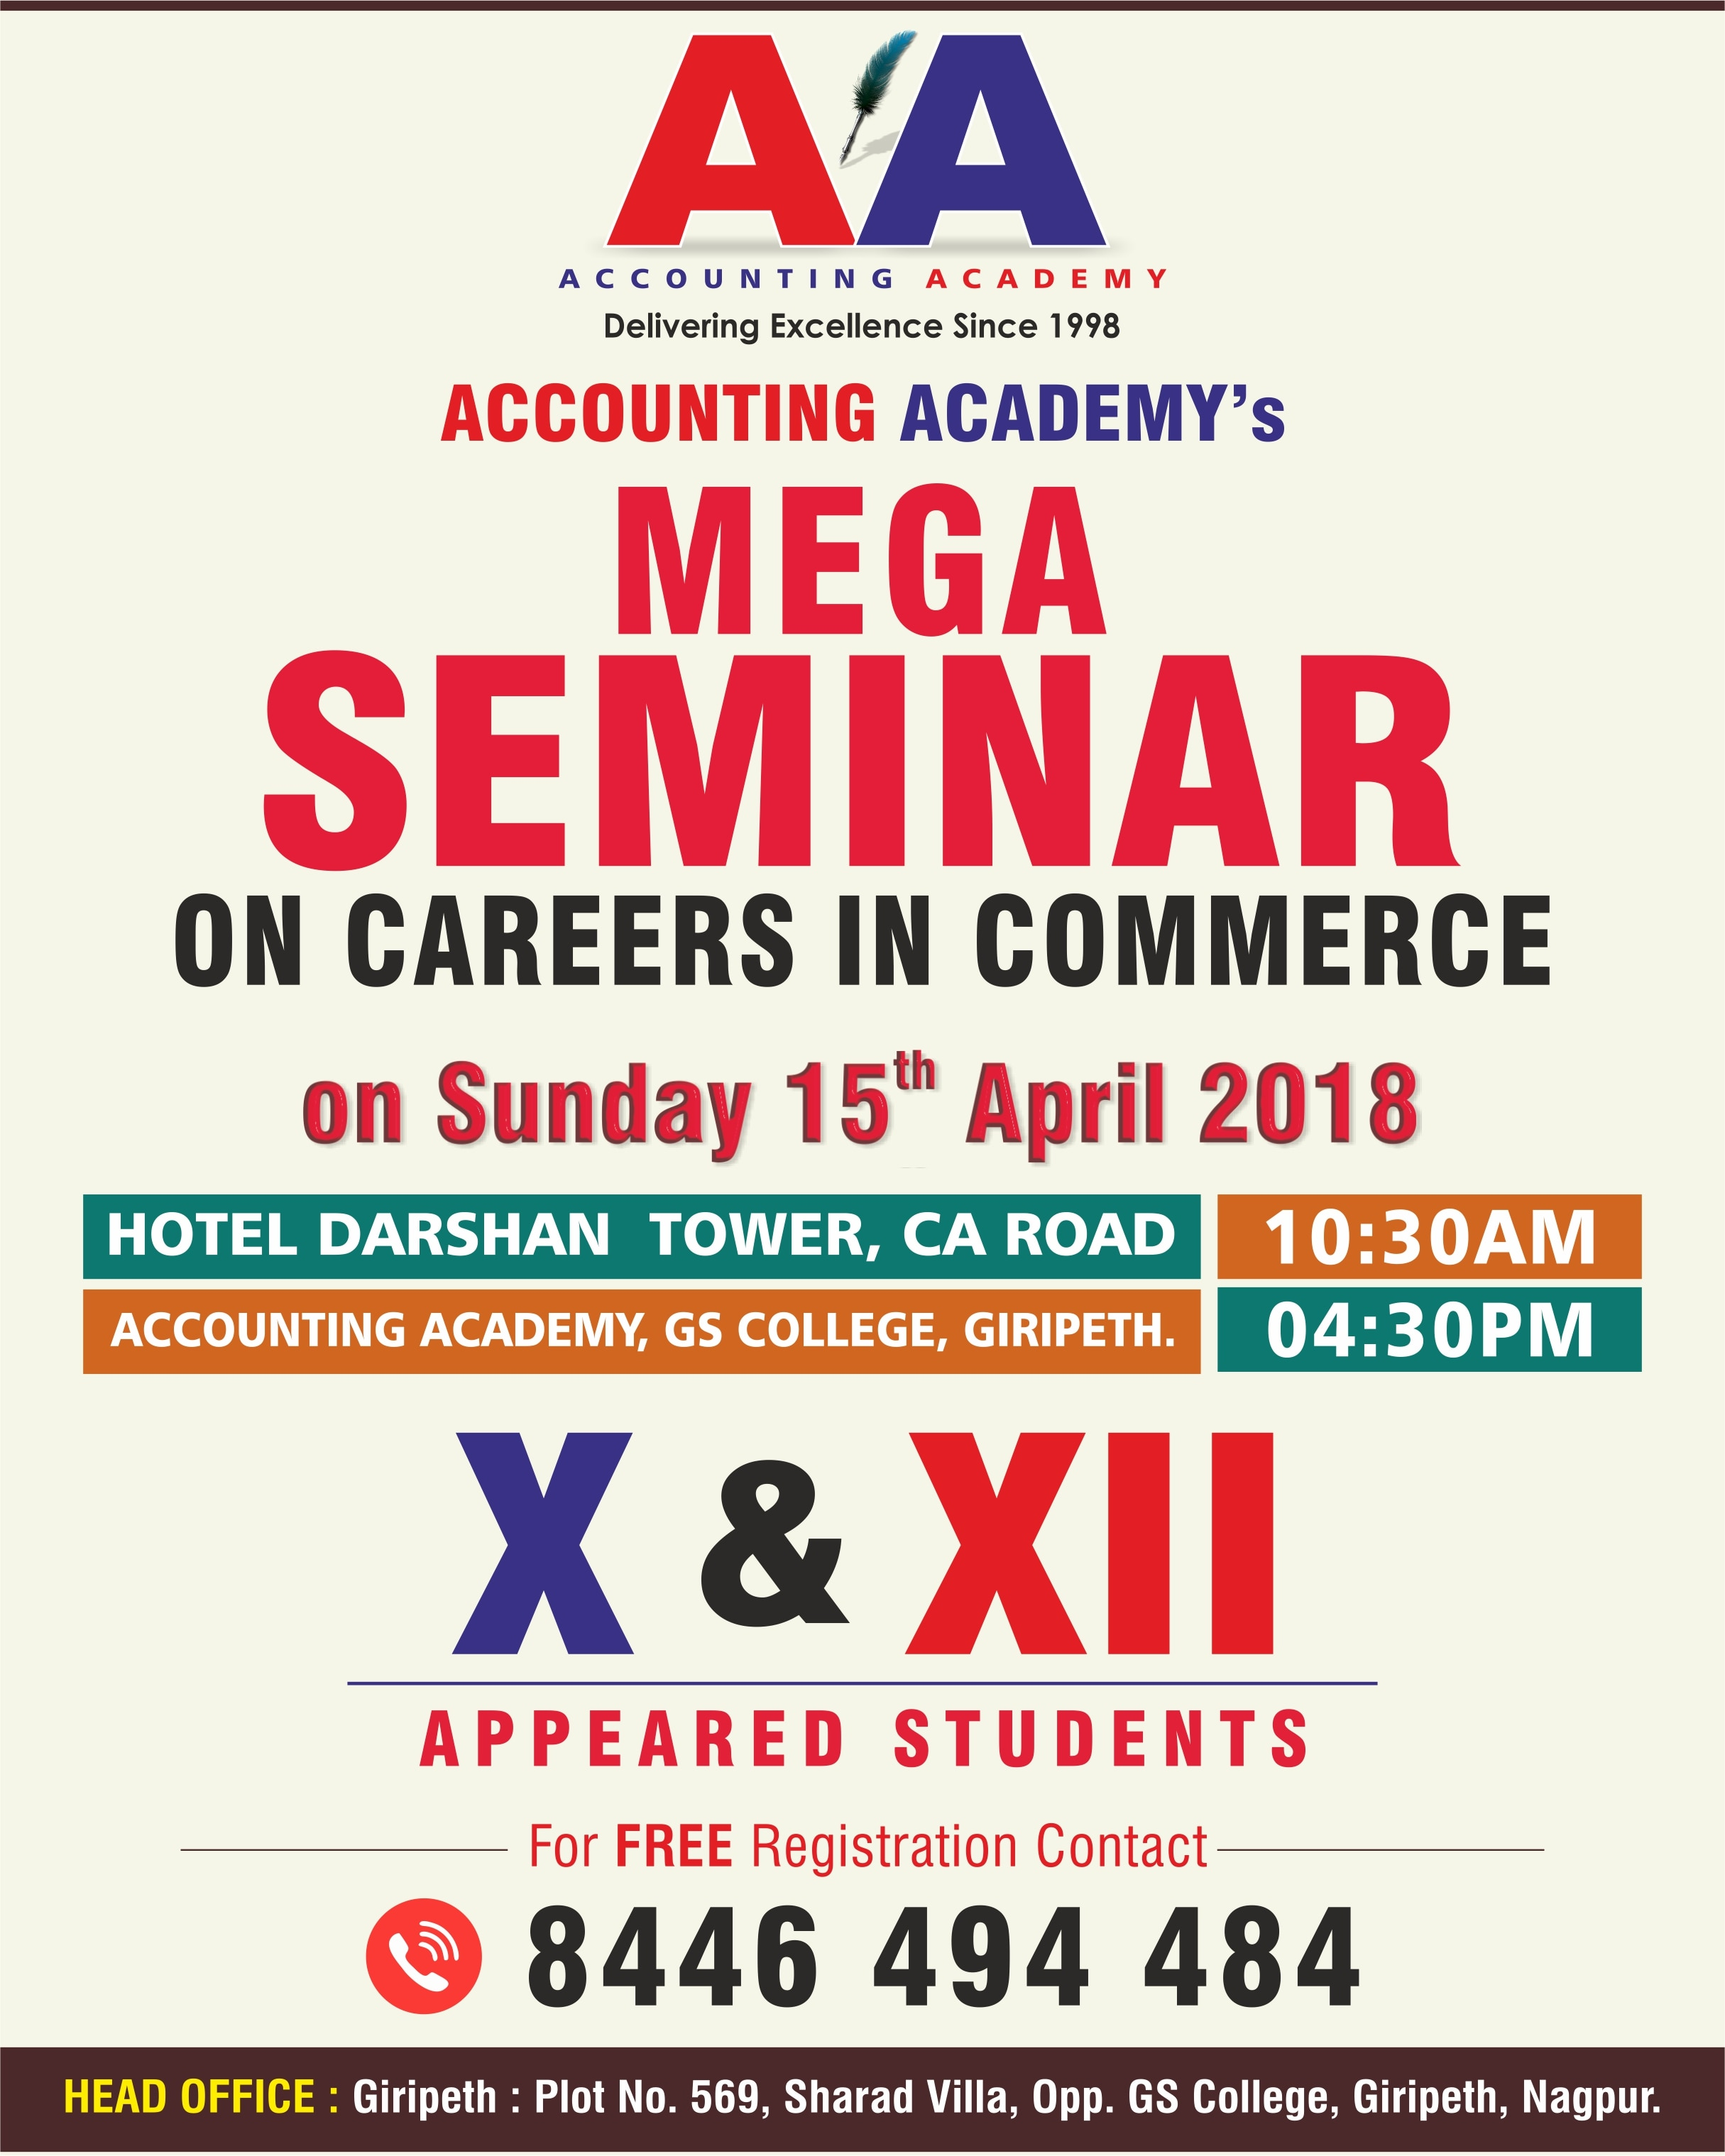 ACCOUNTING ACADEMY's